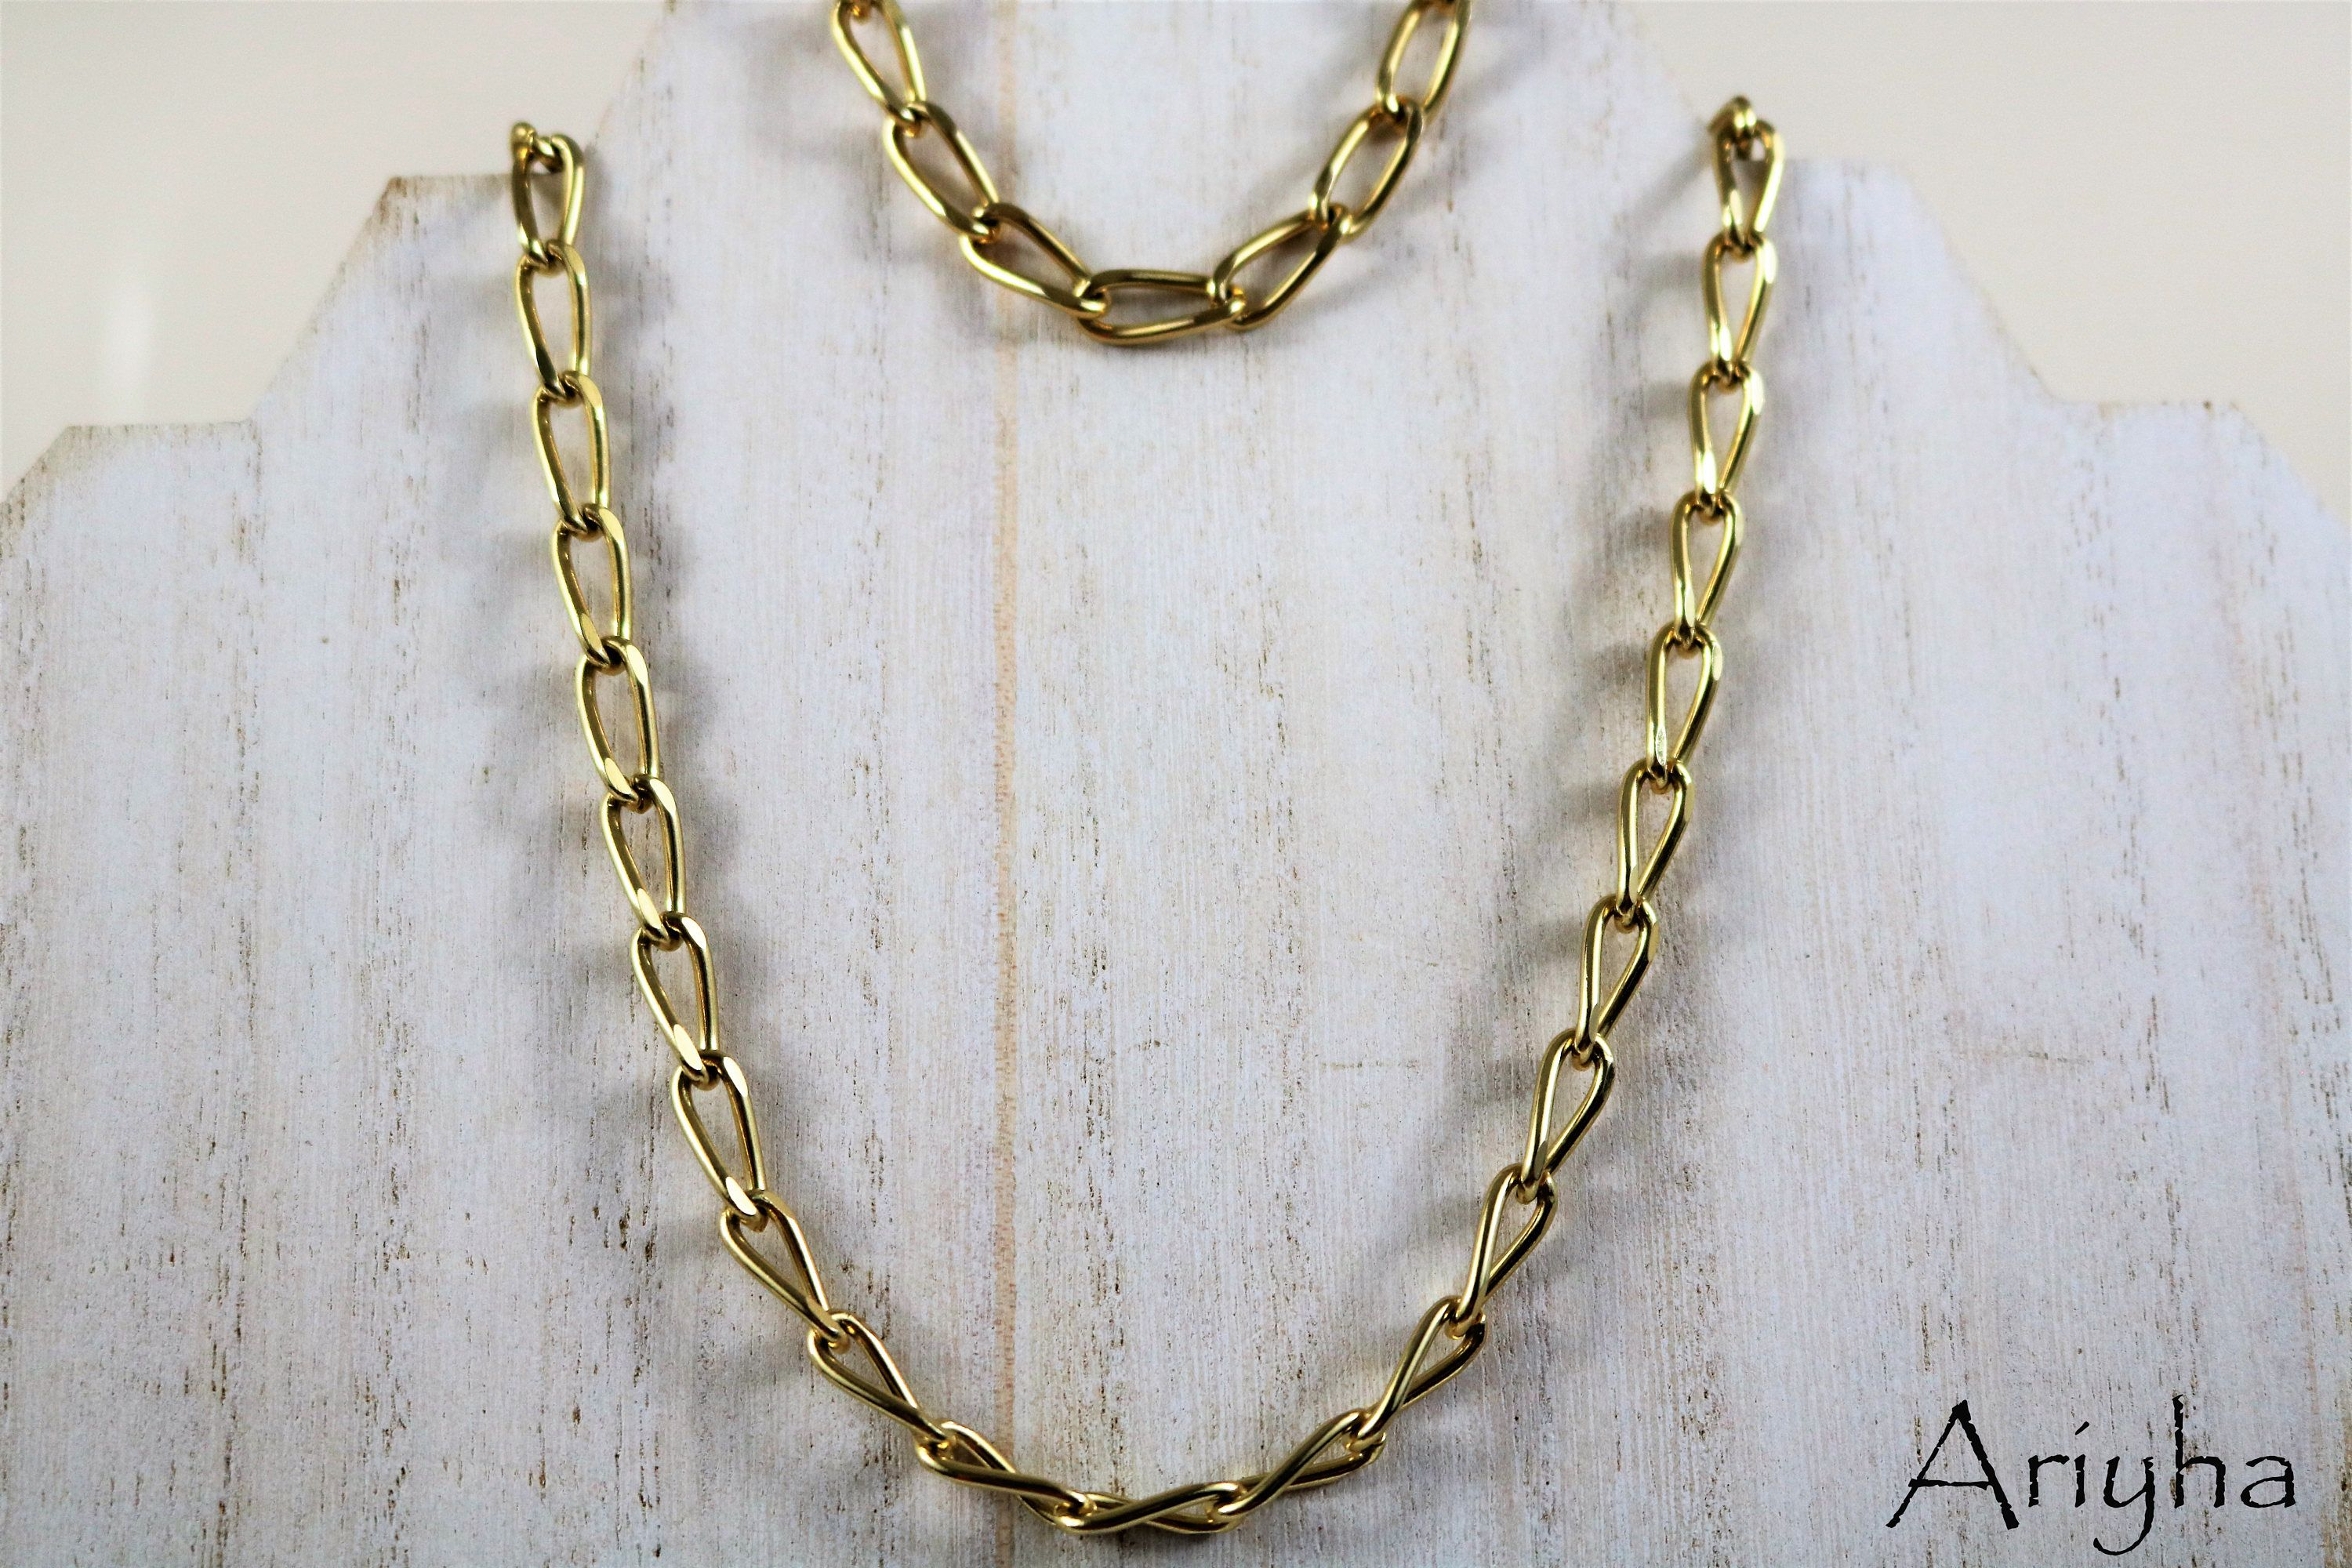 Vintage yellow gold tone link cable chain necklace and bracelet set